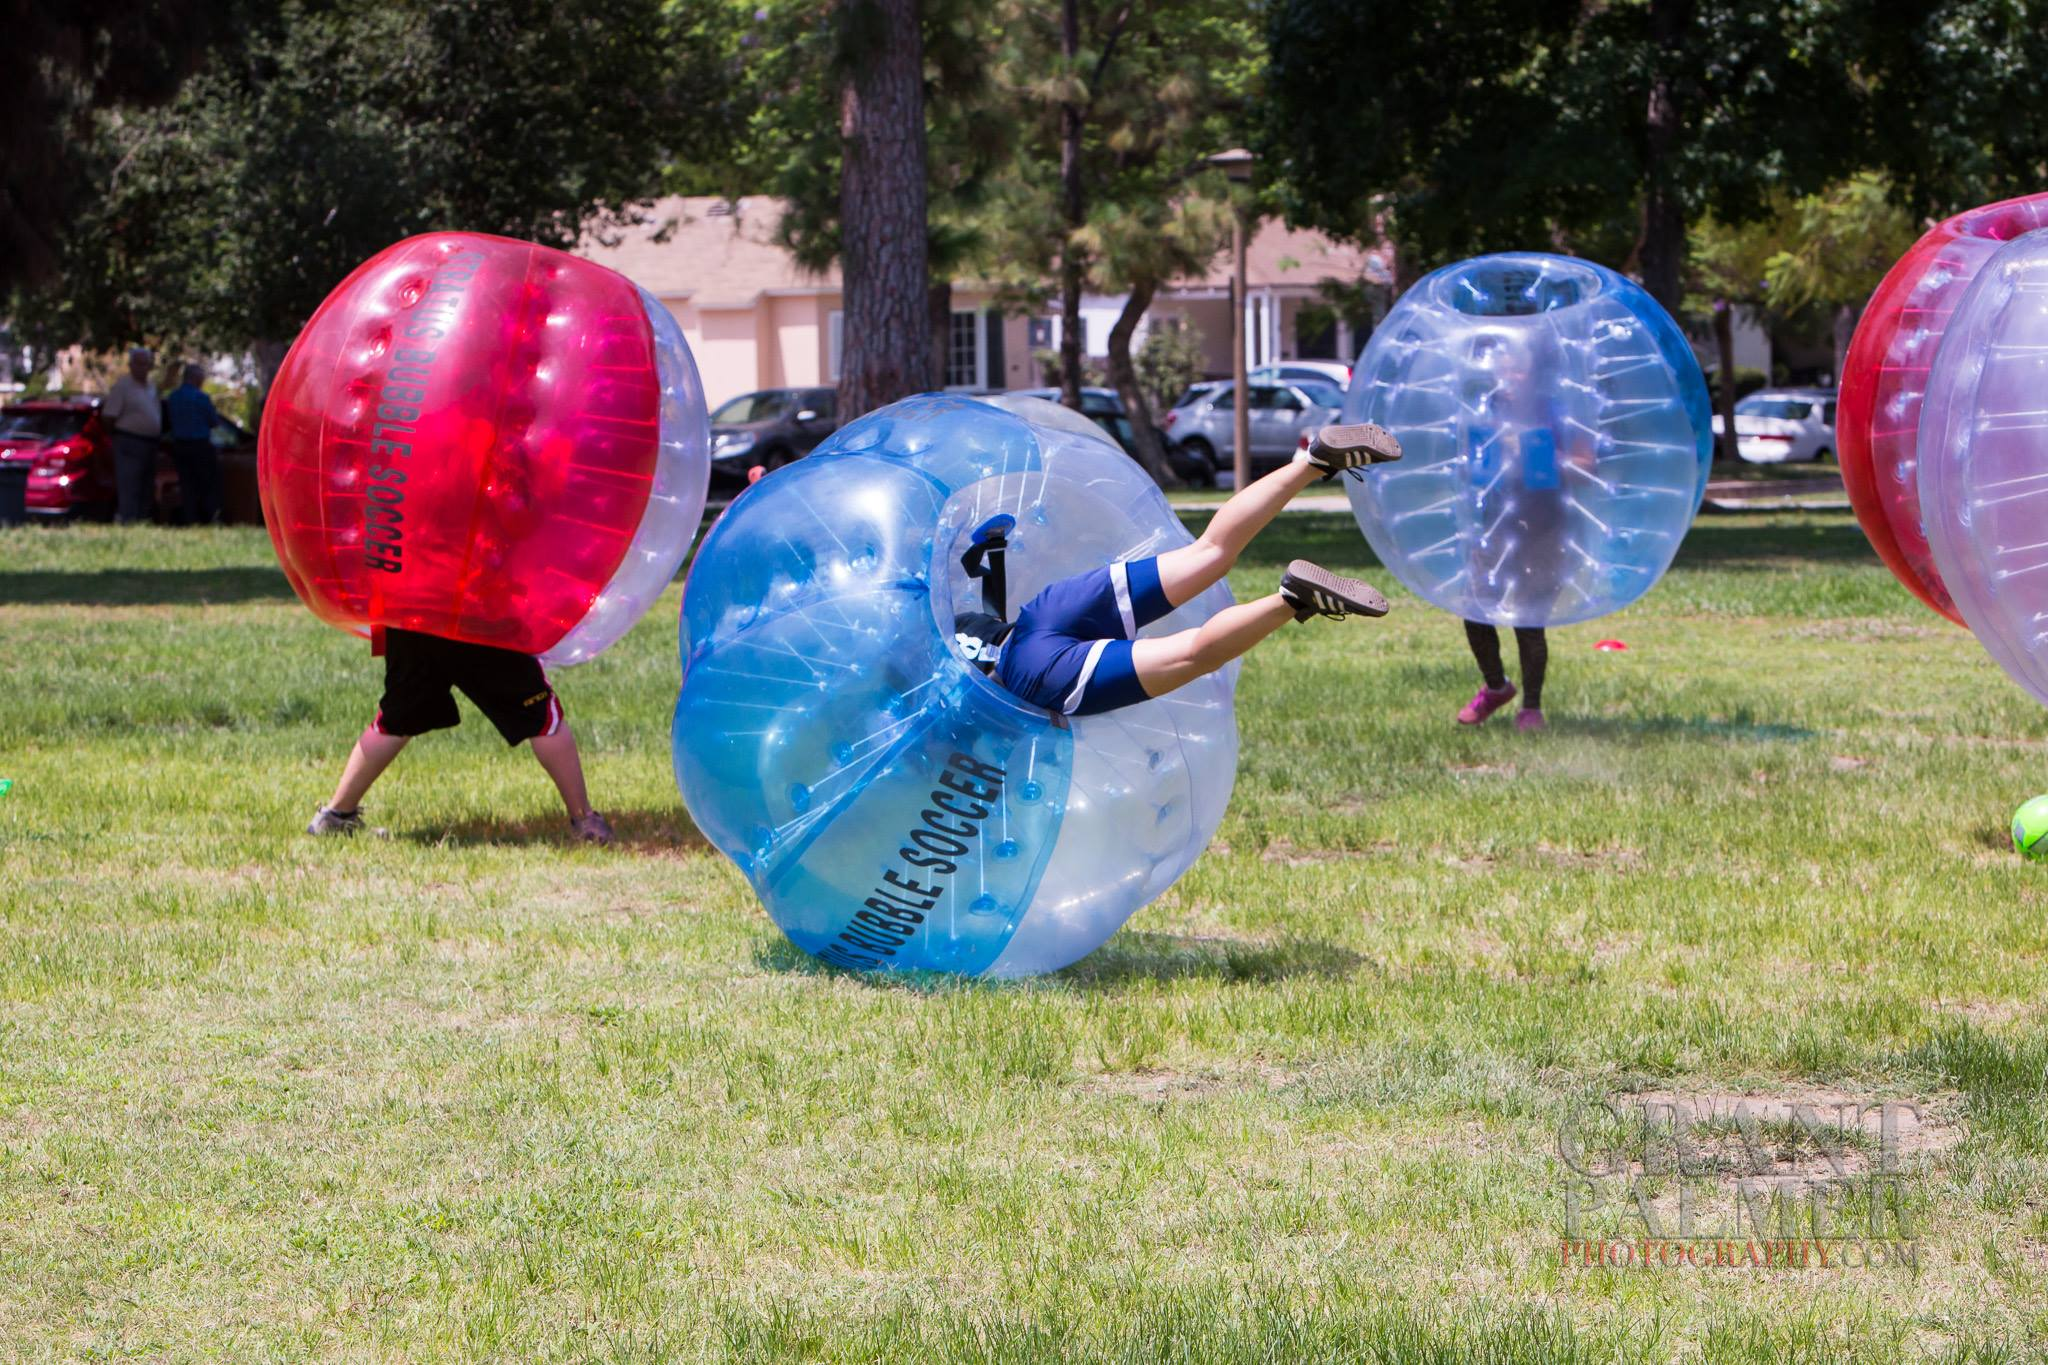 Learn More - Learn more about Stratus Knockerball Rentals in Los Angeles including tips and tricks, park locations, rules and much more